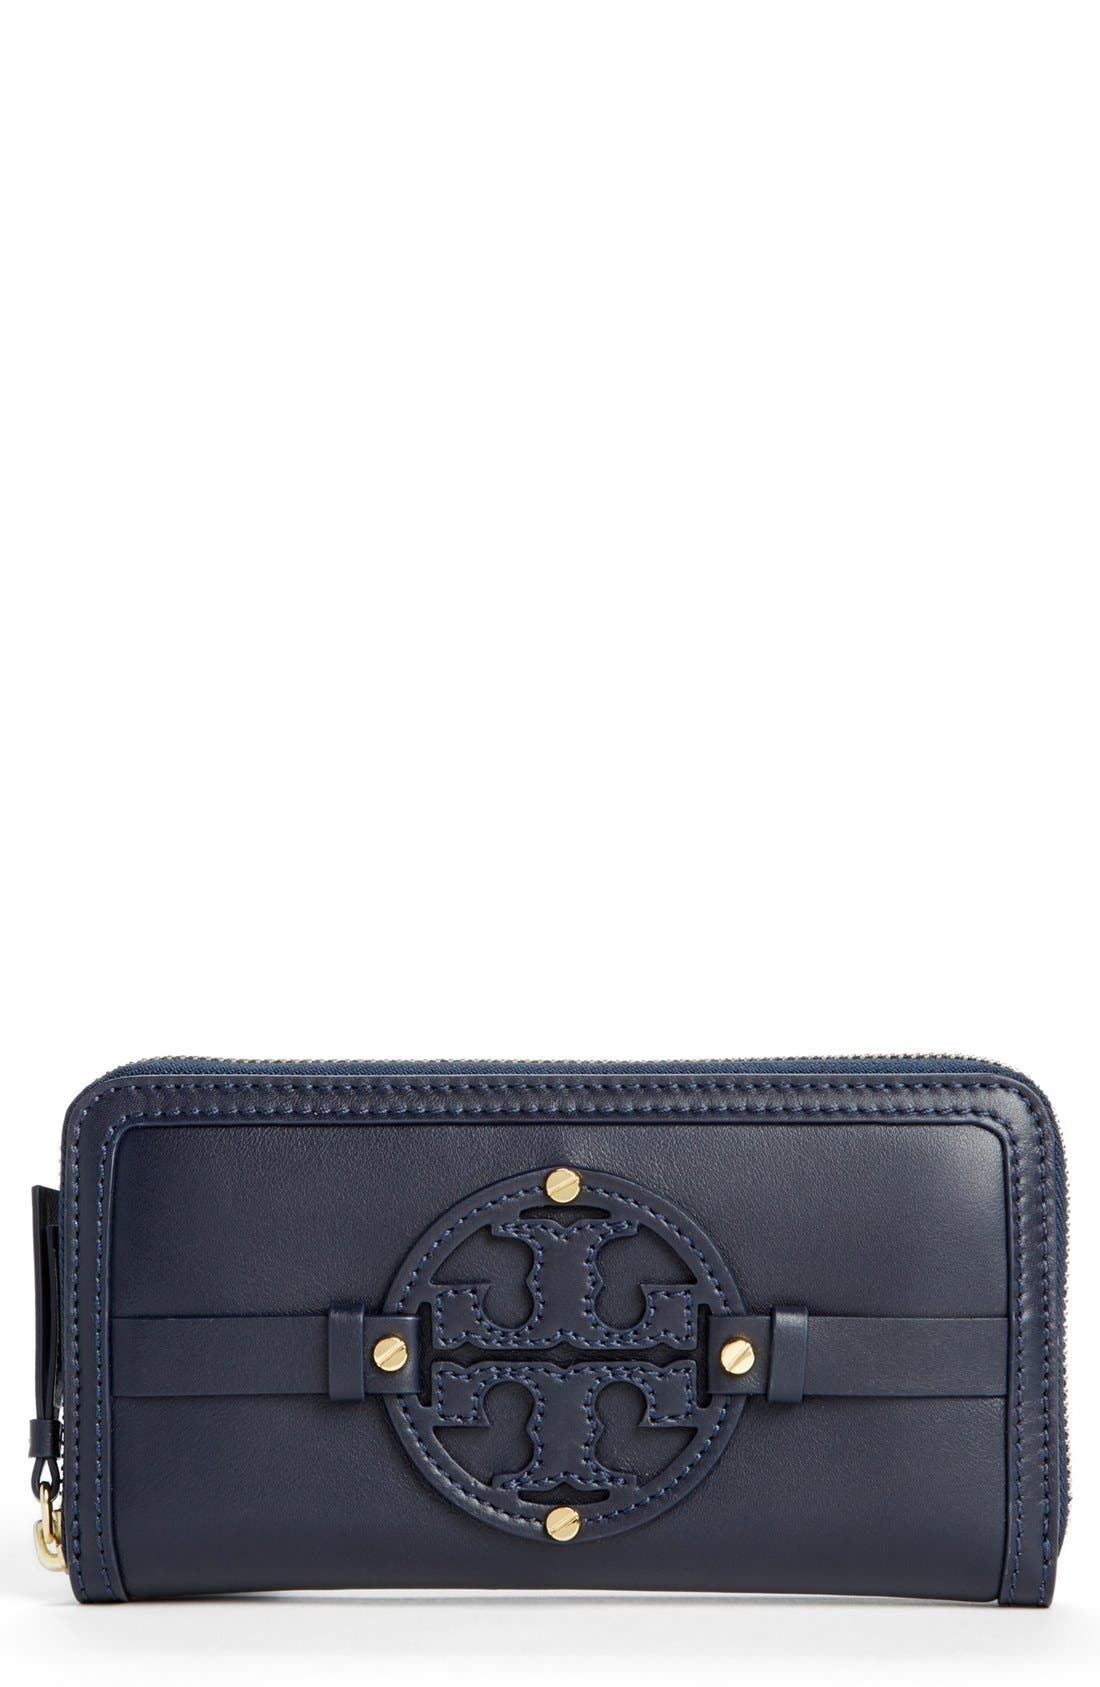 Alternate Image 1 Selected - Tory Burch 'Holly' Continental Wallet